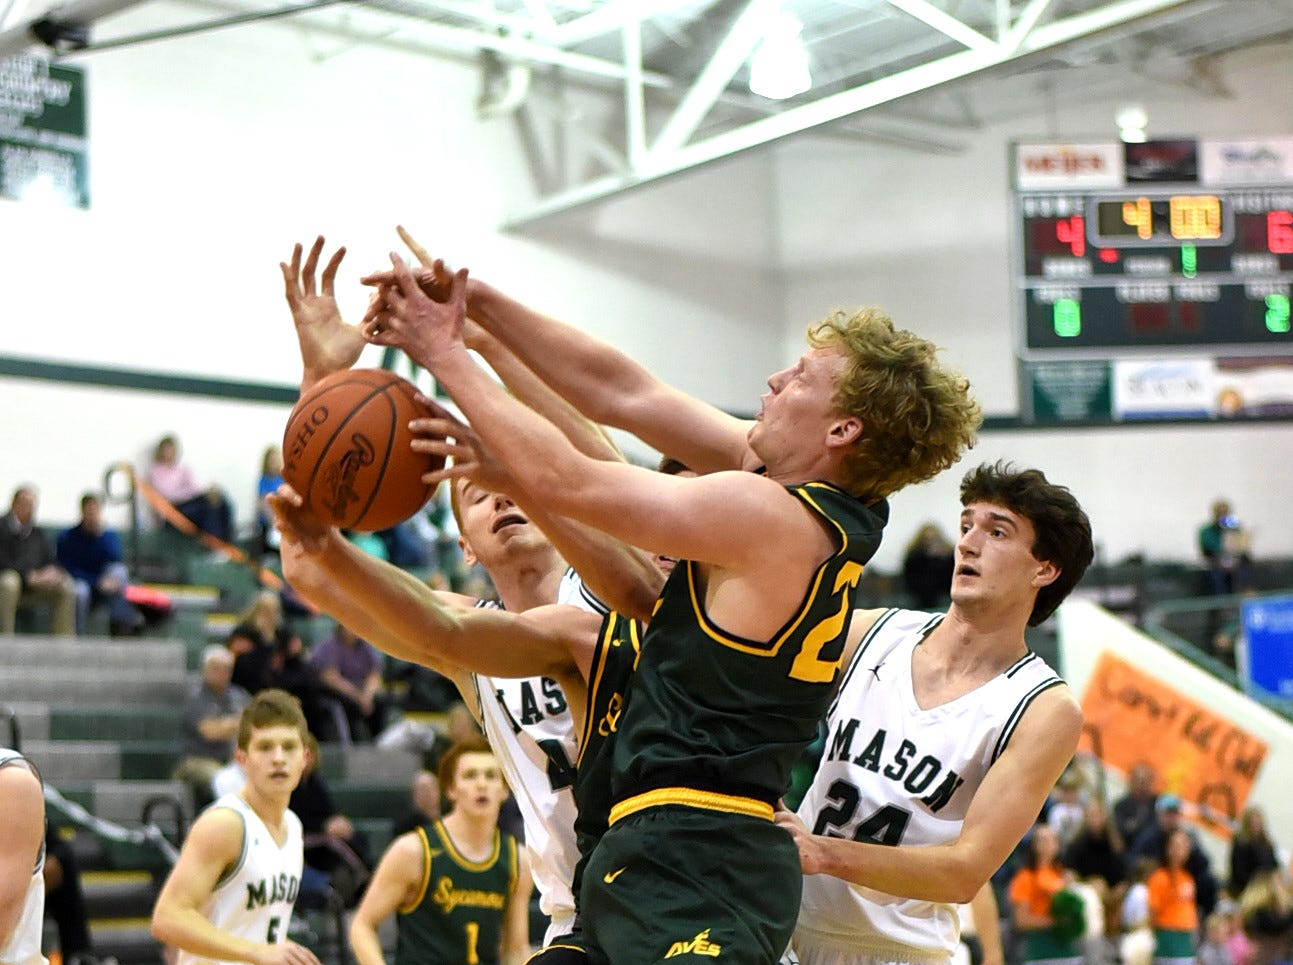 Matt Bolger (20) of Sycamore leads a fight for a rebound in the Third Annual Live for Liz Fight For Cancer Free Kids Basketball Game, Feb. 1, 2019.